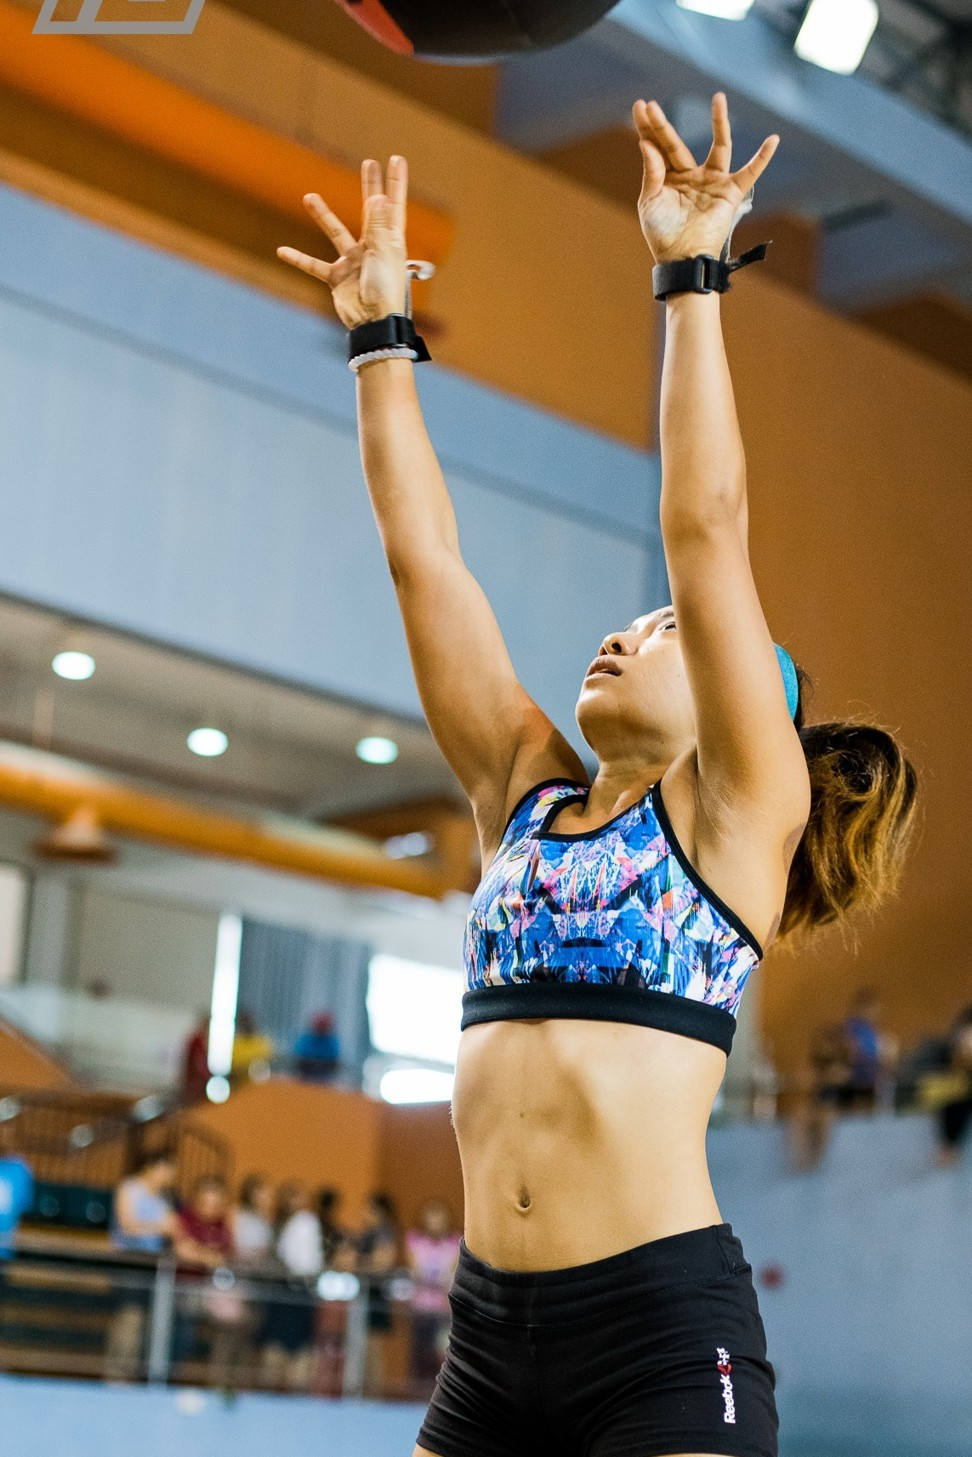 Amira Ayob, who used to work as a civil engineer, is now a part-time CrossFit coach. Photo: Handout